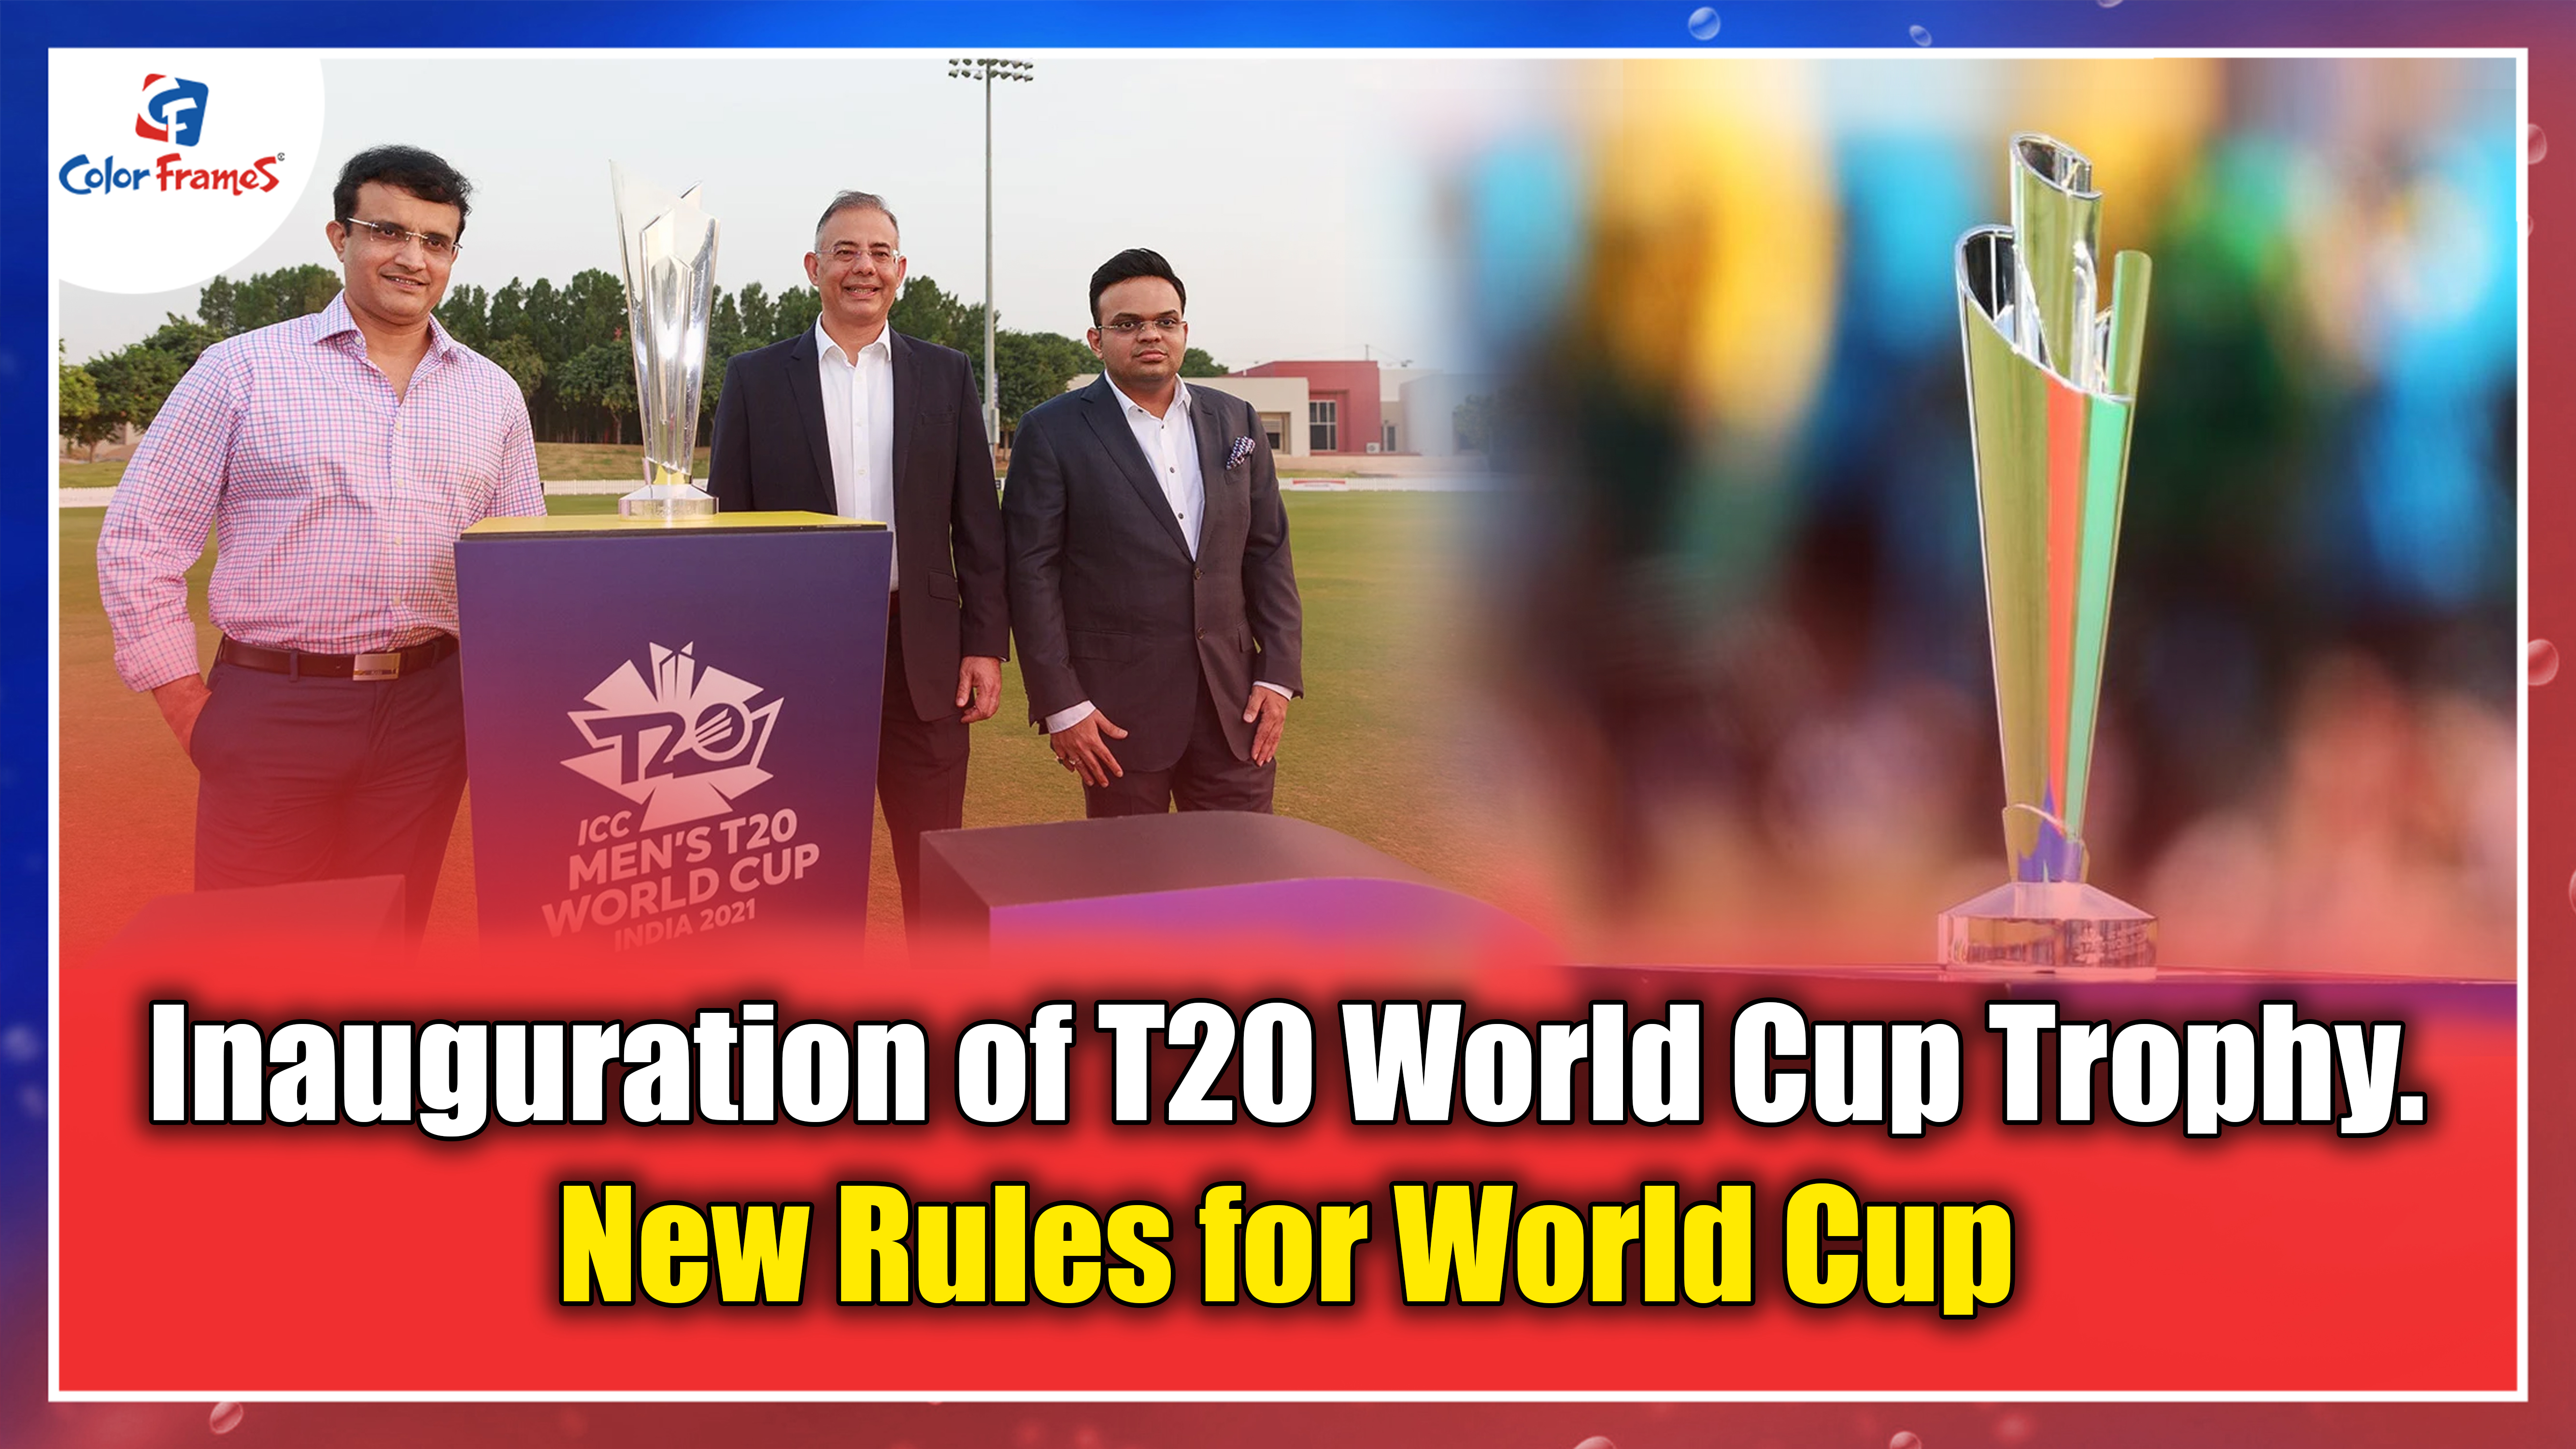 Inauguration of T20 World Cup Trophy. New Rules for World Cup.